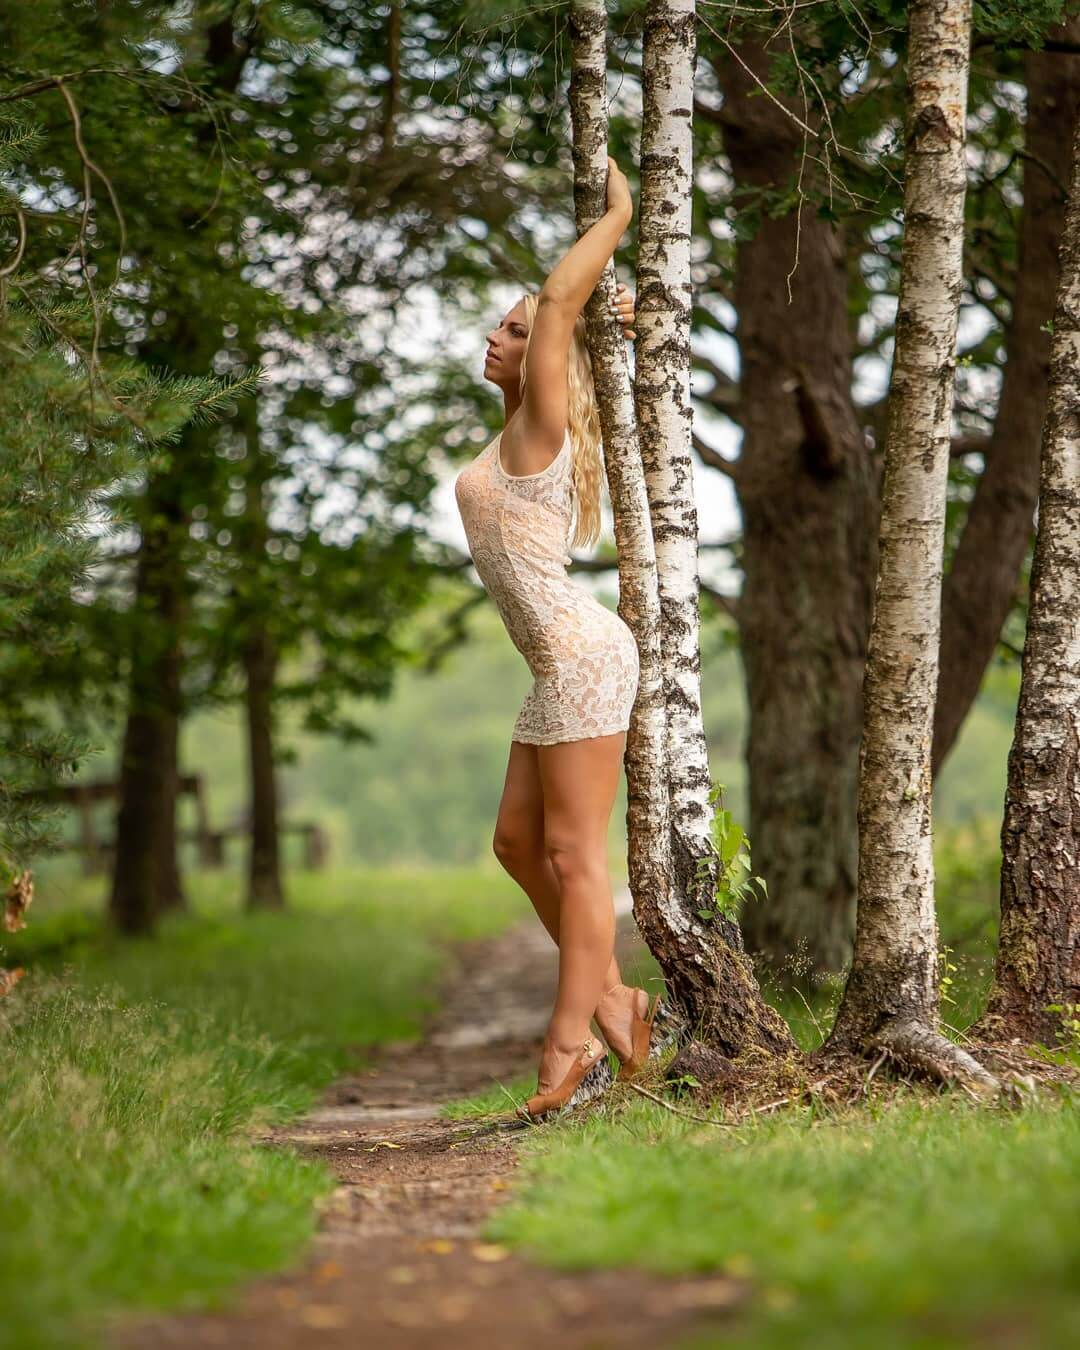 Beautiful Dutch model Willeke Bartels @willekebartels.fitmodel standing backed to a tree wearing a bikini with a transparent white cover-up holding her arms up showing her toned muscular and sexy legs